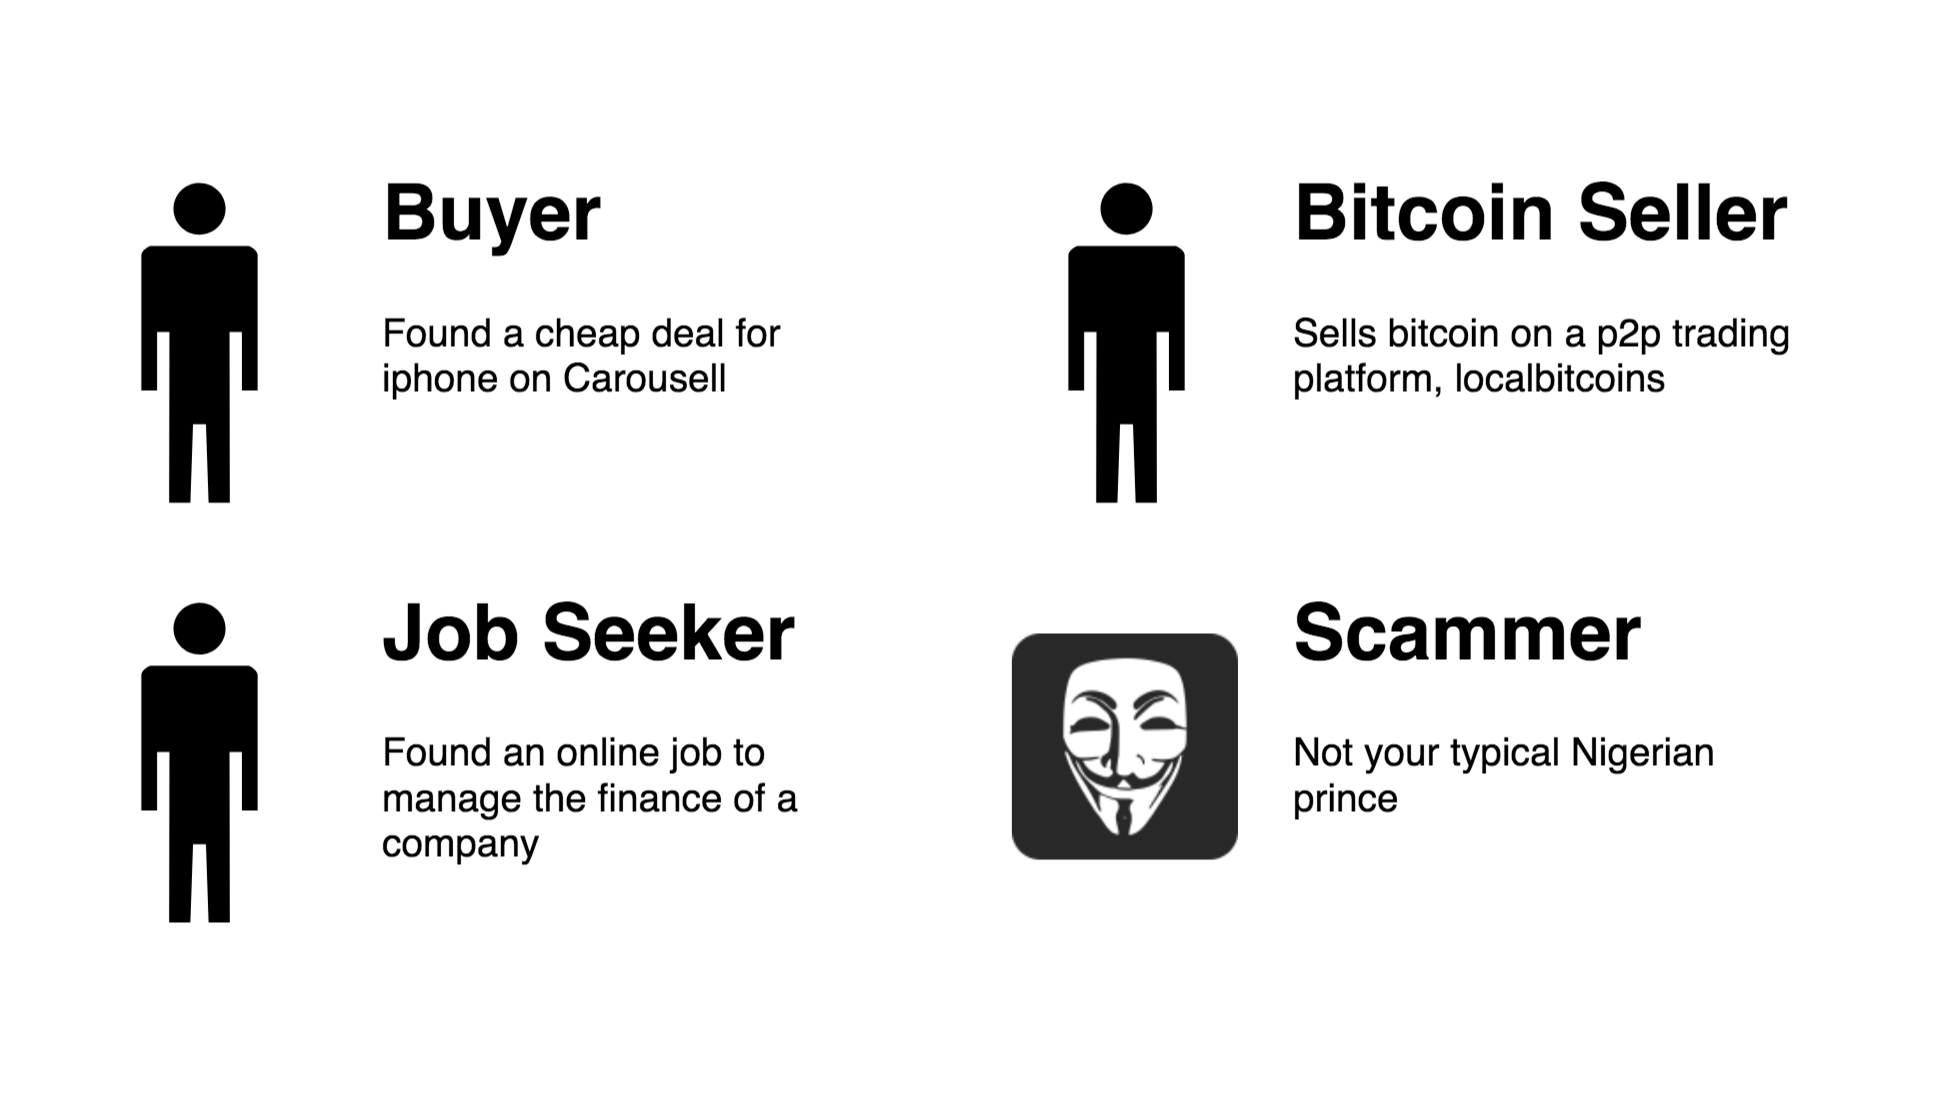 Introducing the buyer (victim), job seeker, bitcoin seller and the scammer